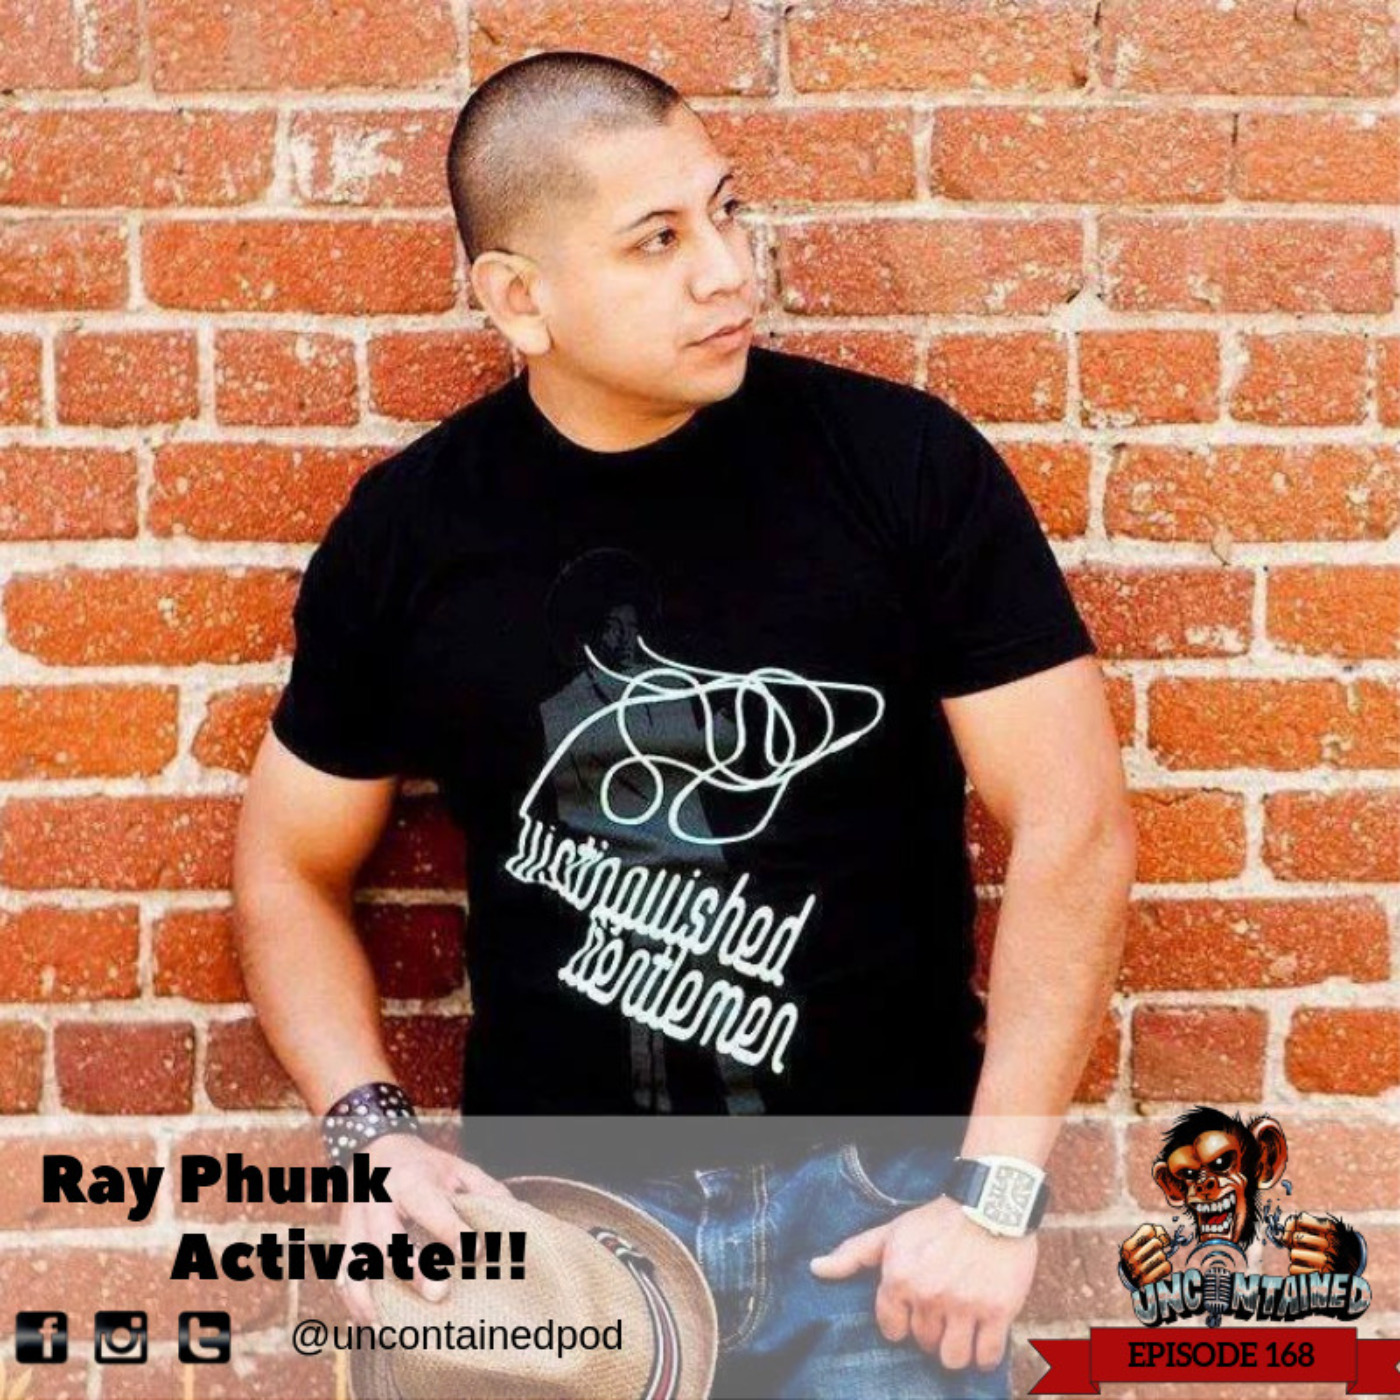 Episode 168: Ray Phunk - Activate!!!